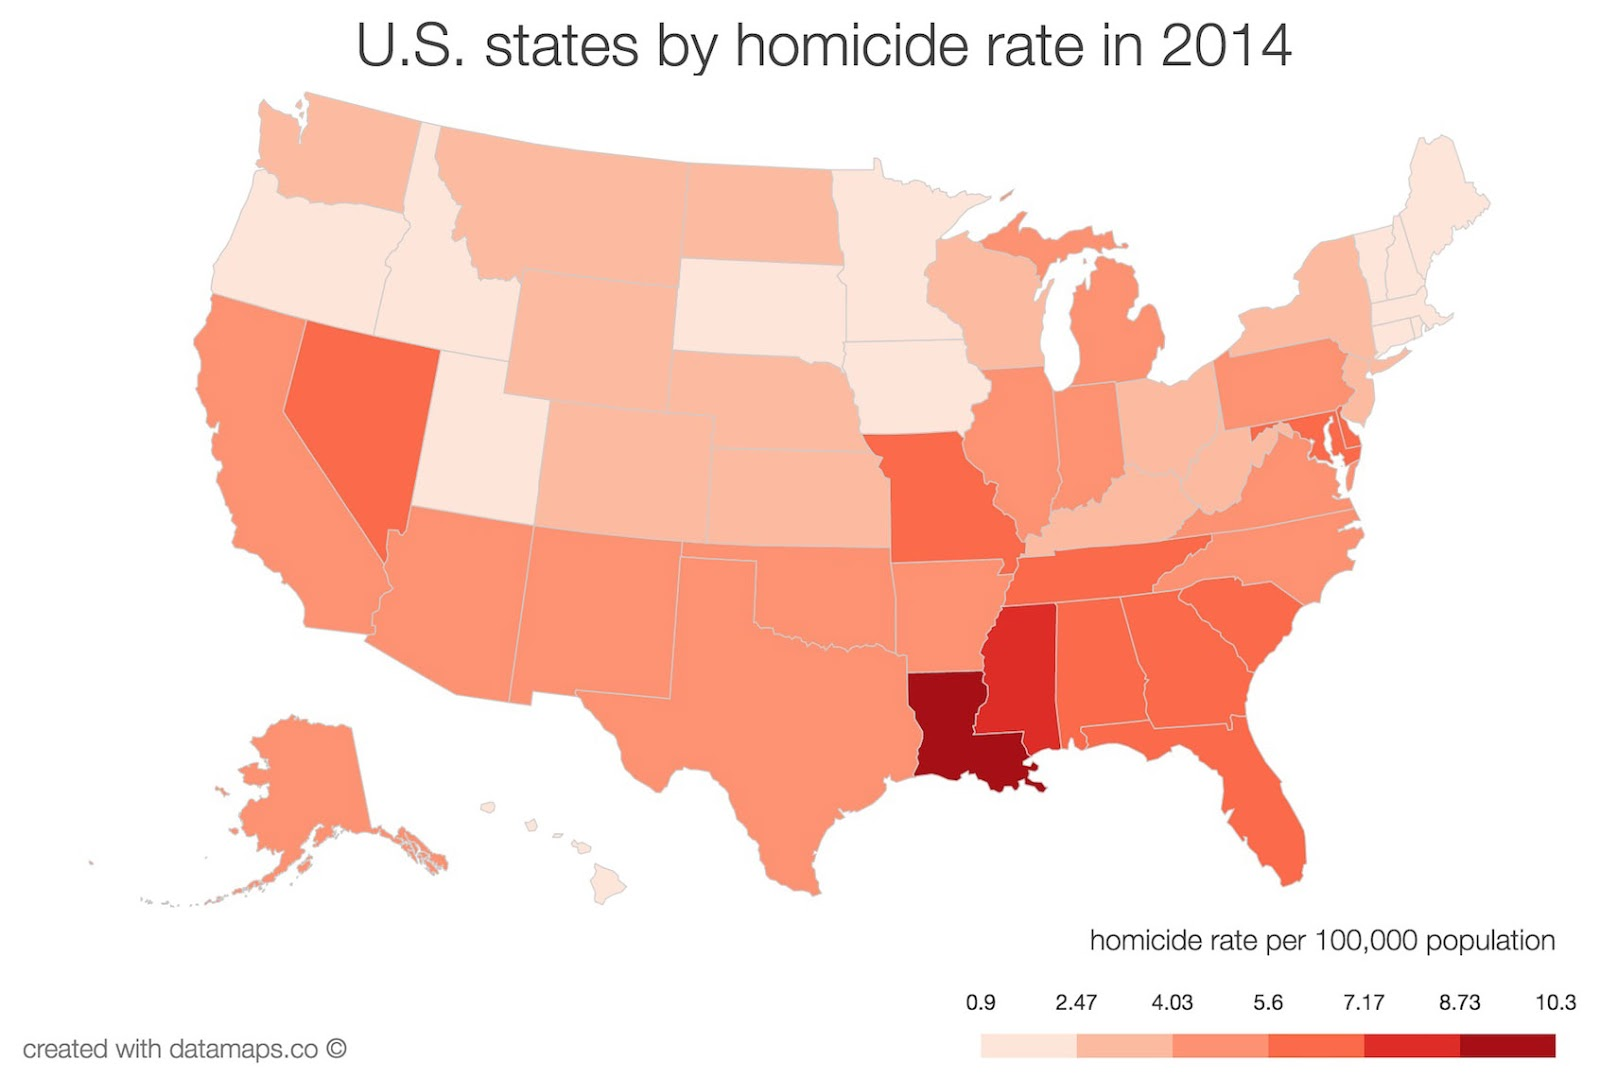 USA states by homicide rate